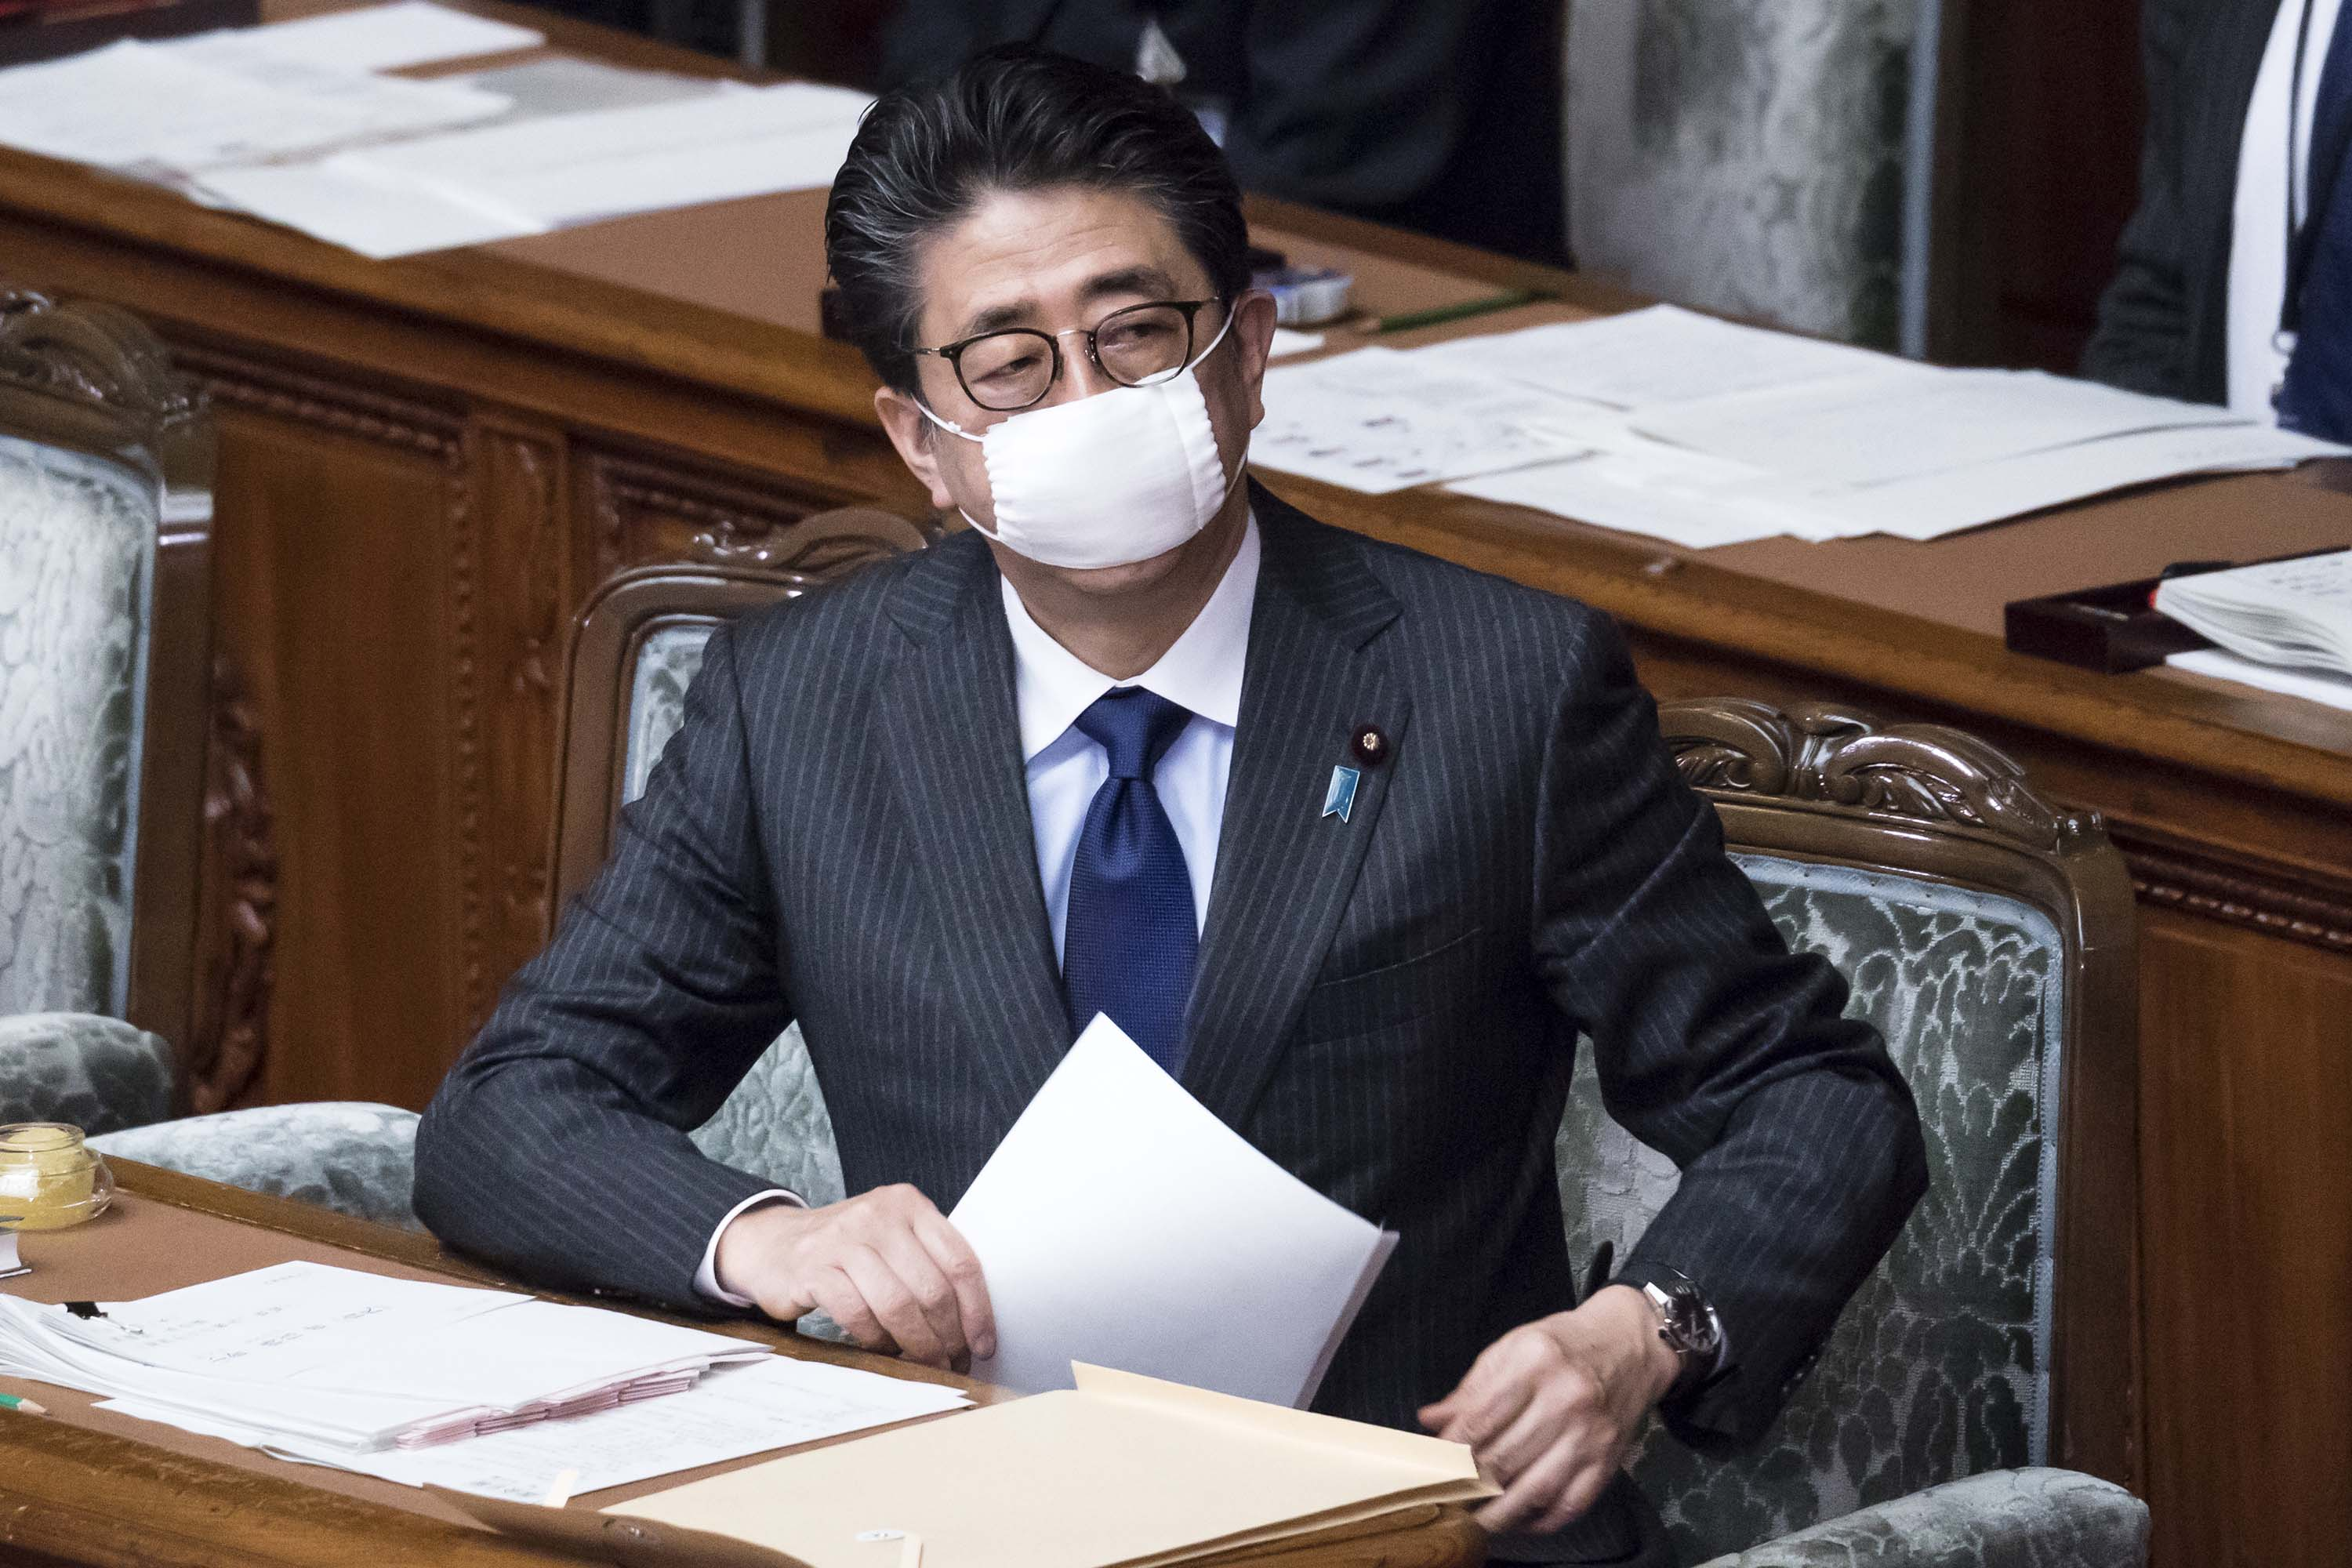 Japan's Prime Minister Shinzo Abe attends a parliamentary session on April 2 in Tokyo.